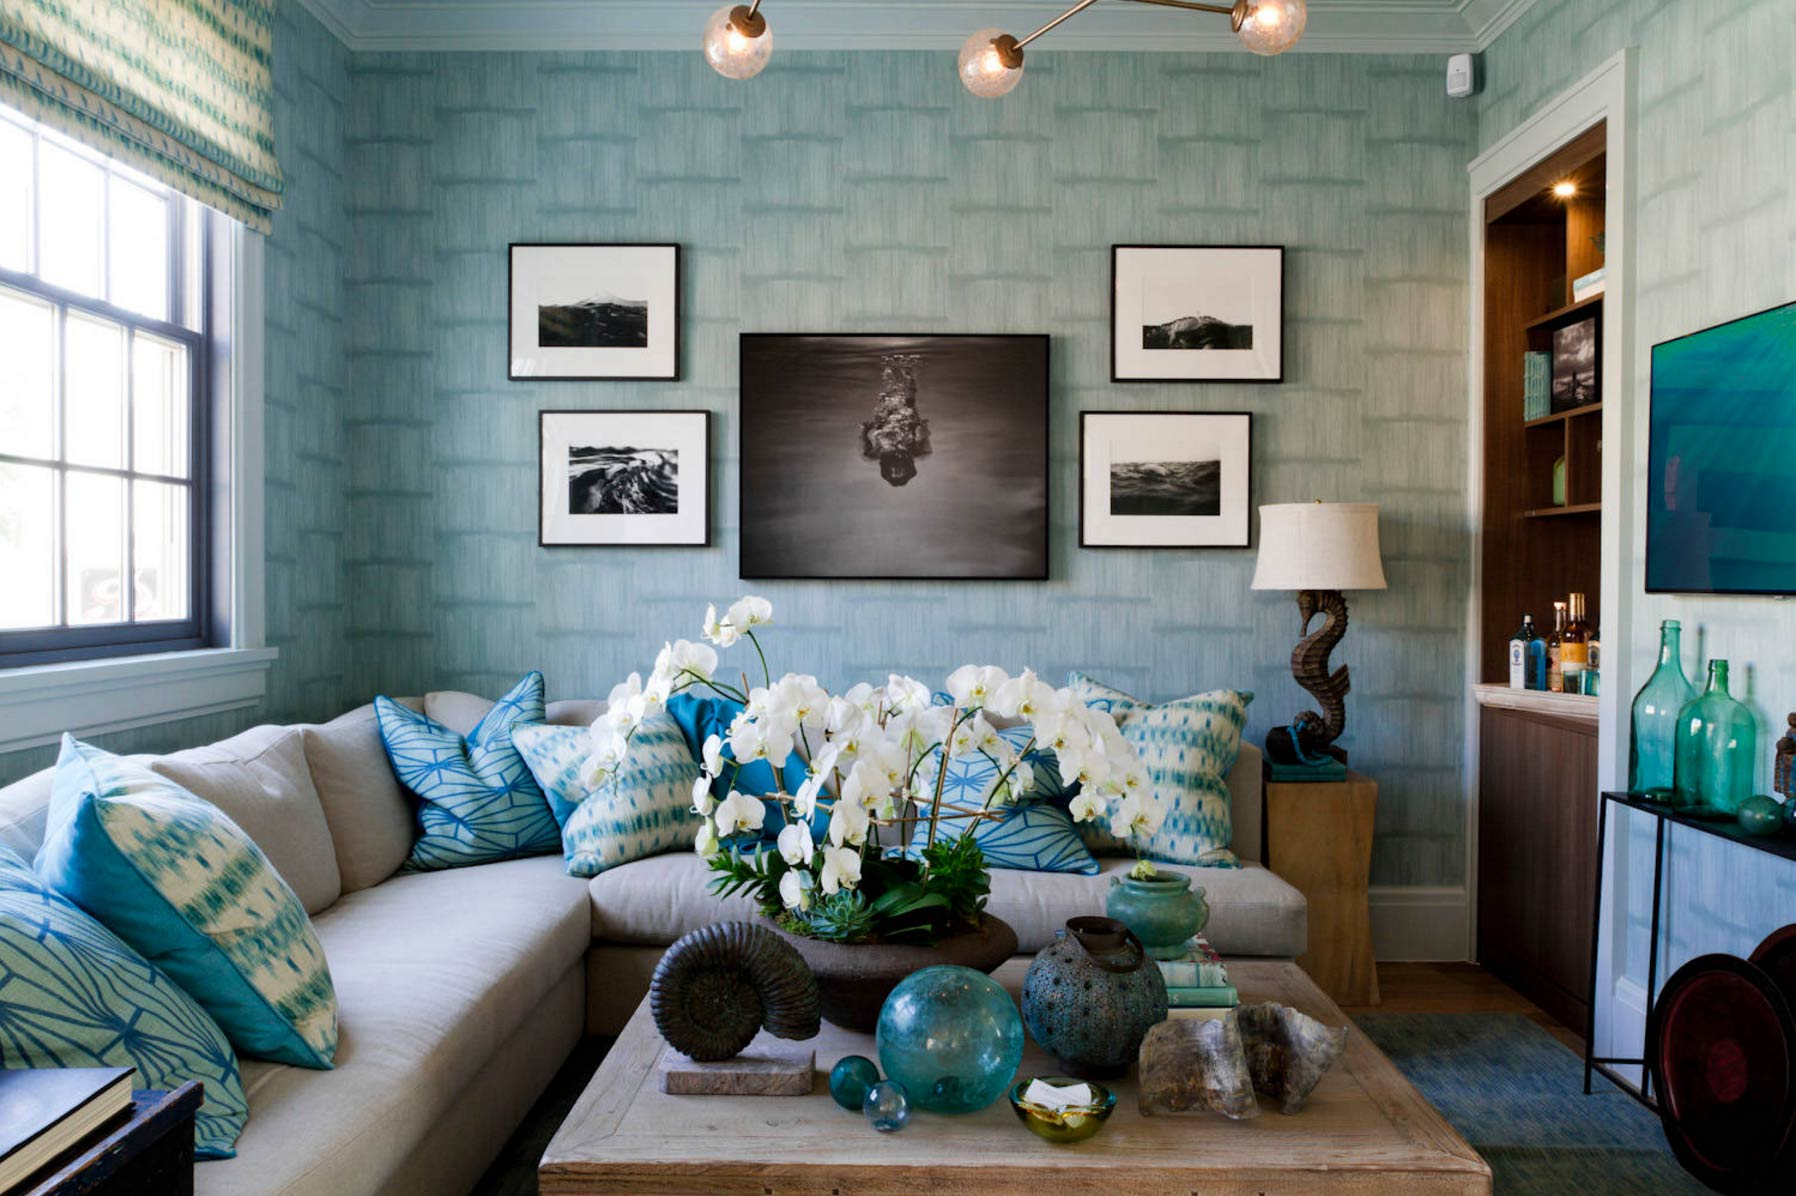 Interior inspiration monet s water lilies for The family room on main